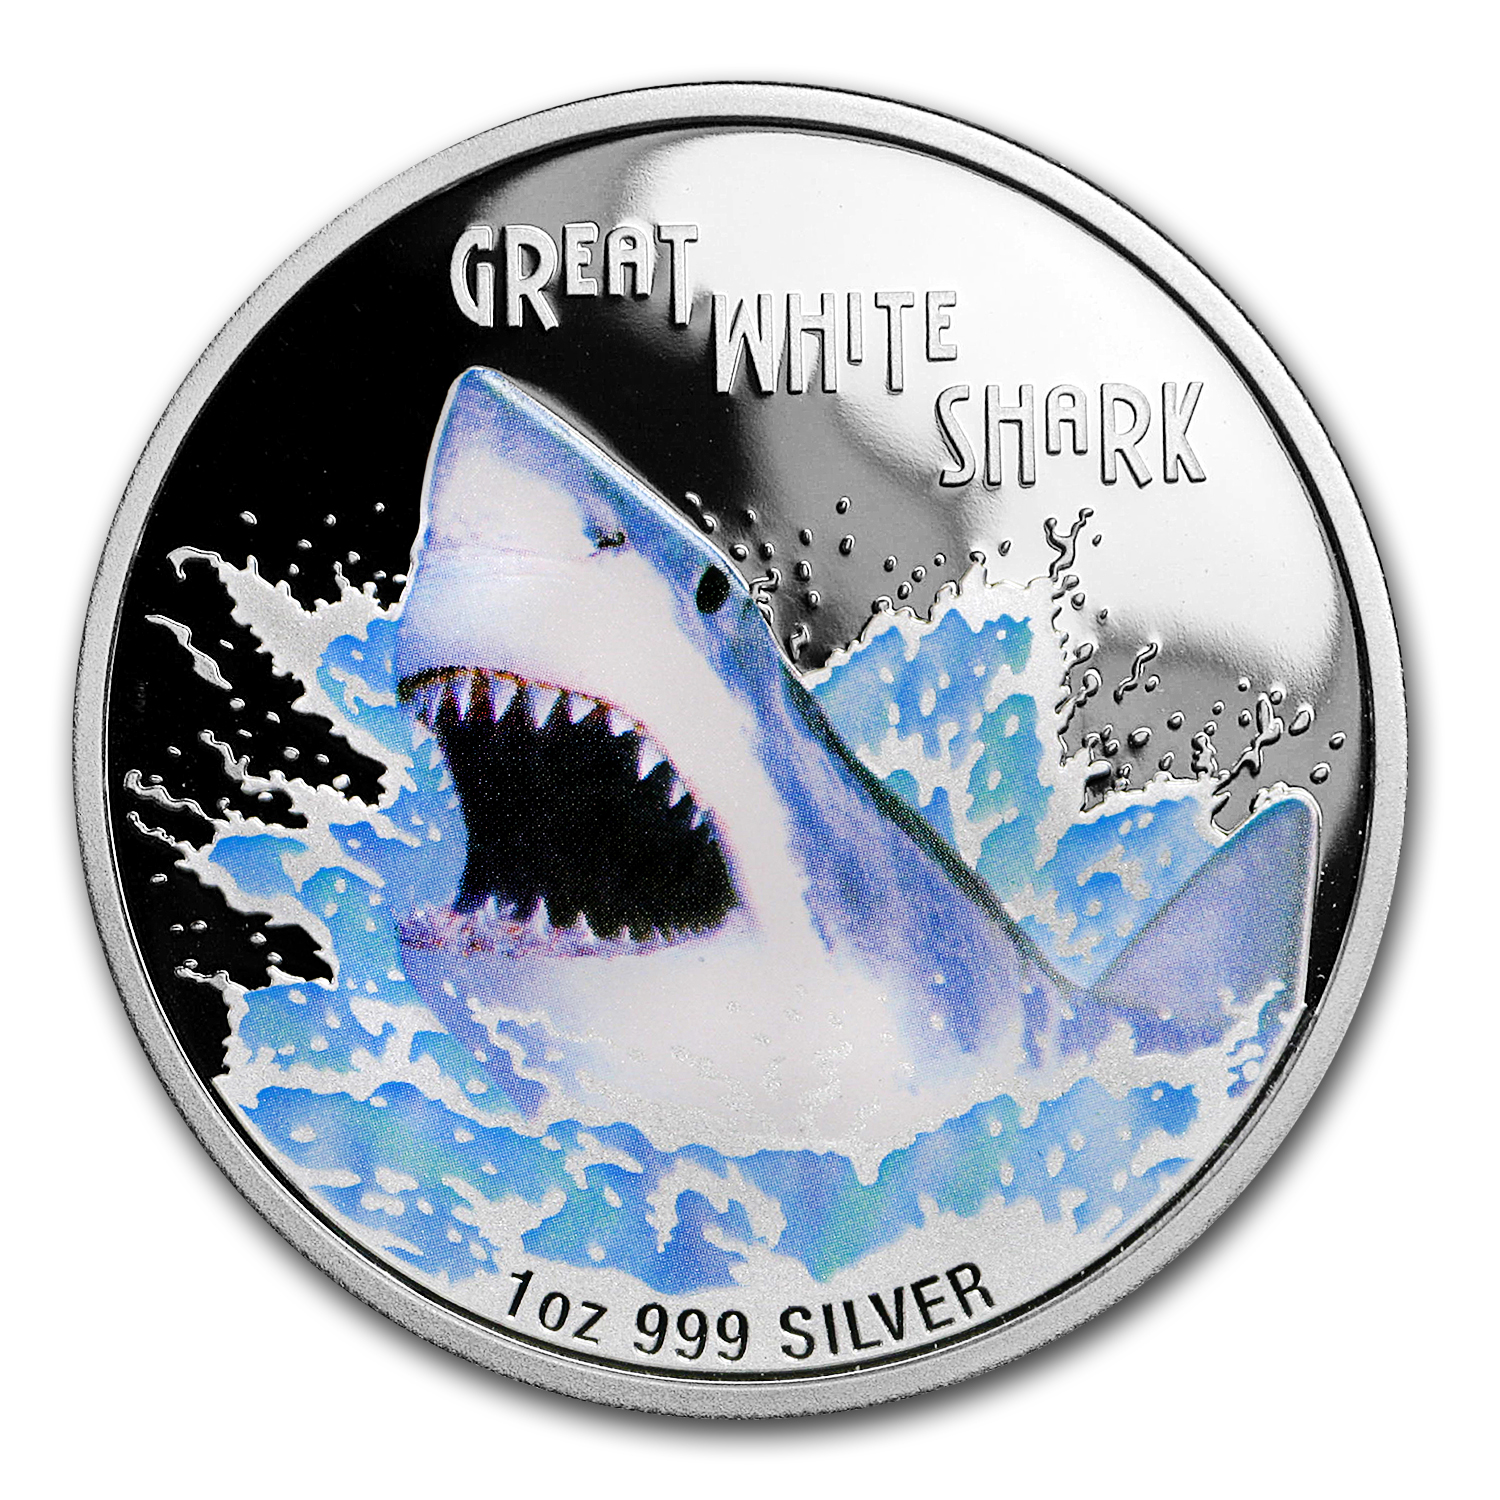 2007 Tuvalu 1 oz Silver Great White Shark Proof (Capsule Only)